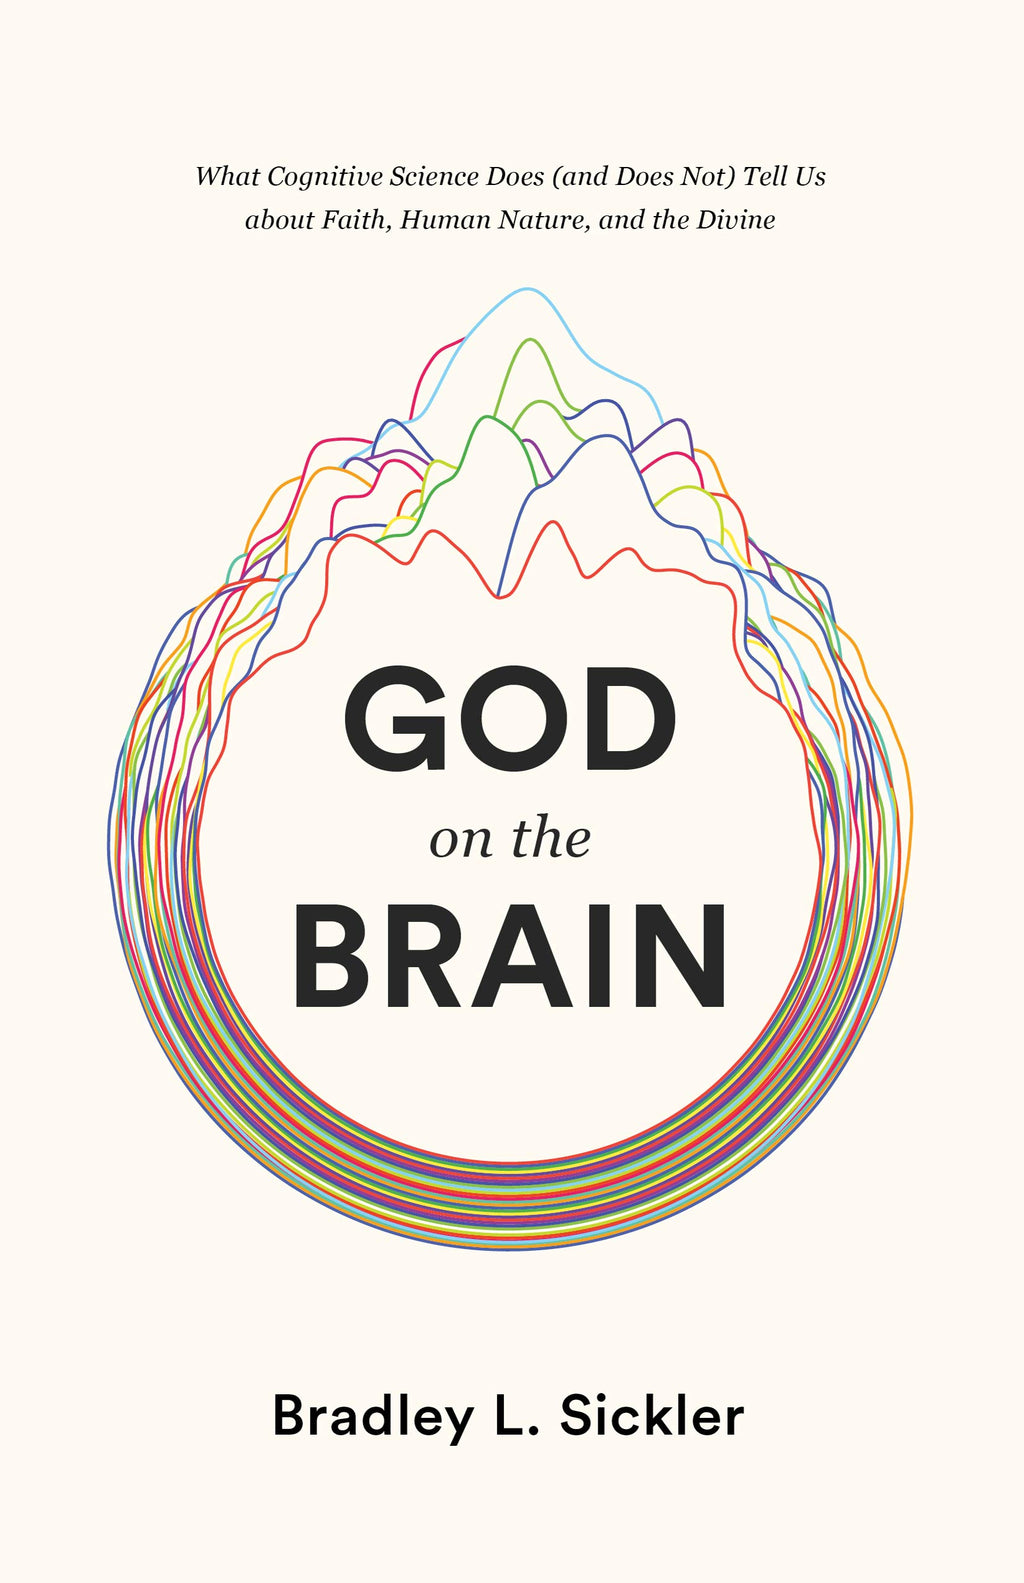 God on the Brain: What Cognitive Science Does (and Does Not) Tell Us about Faith, Human Nature, and the Divine - Sickler, Brad - 9781433564437